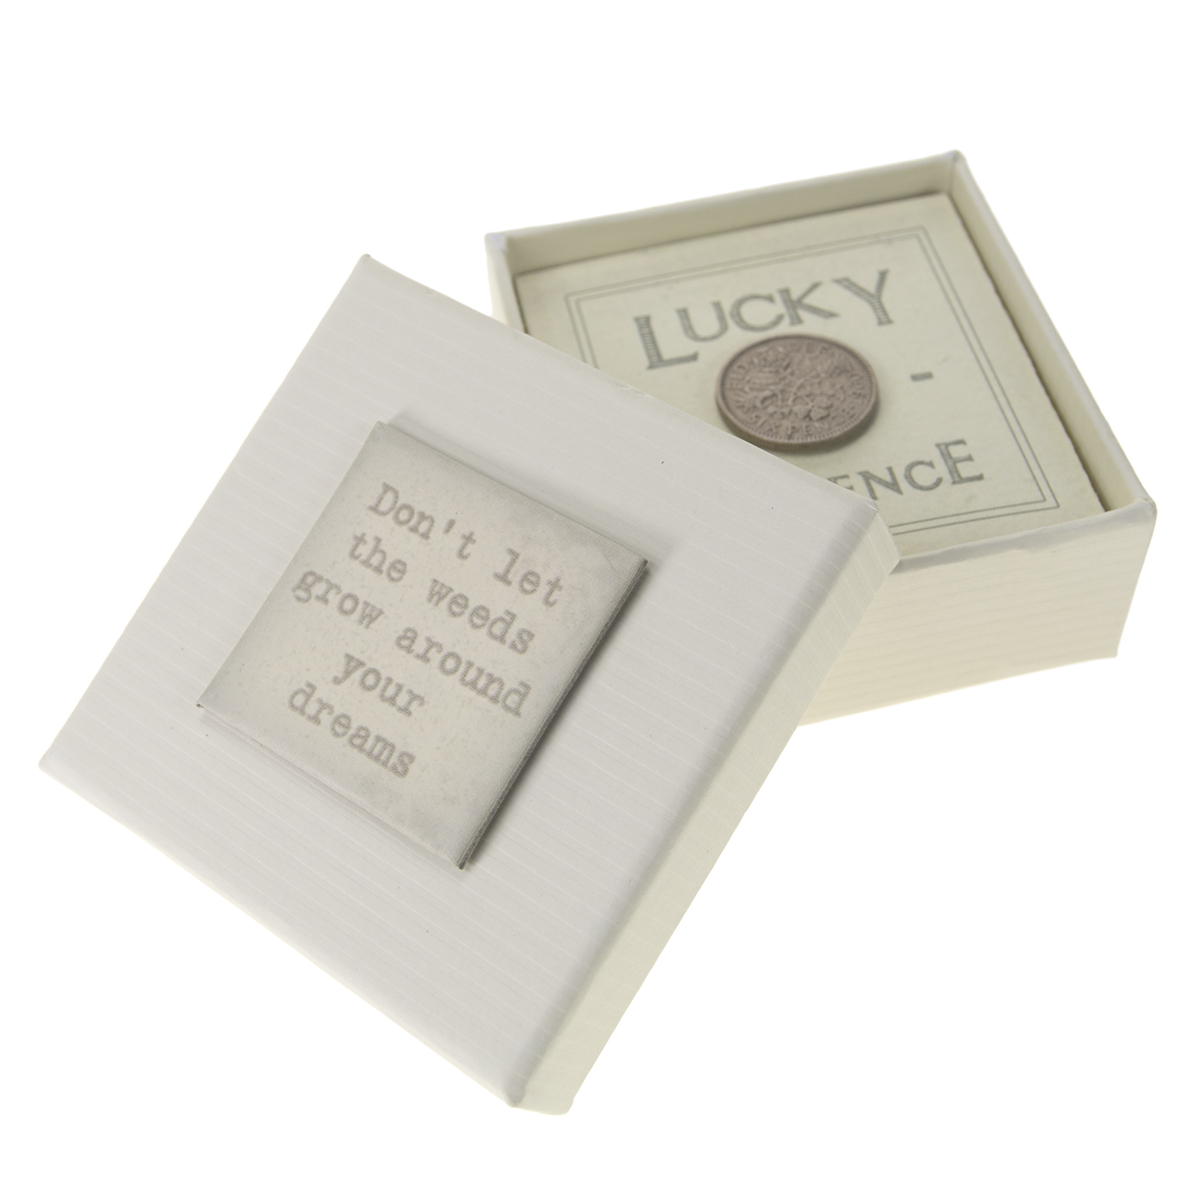 A preview product image